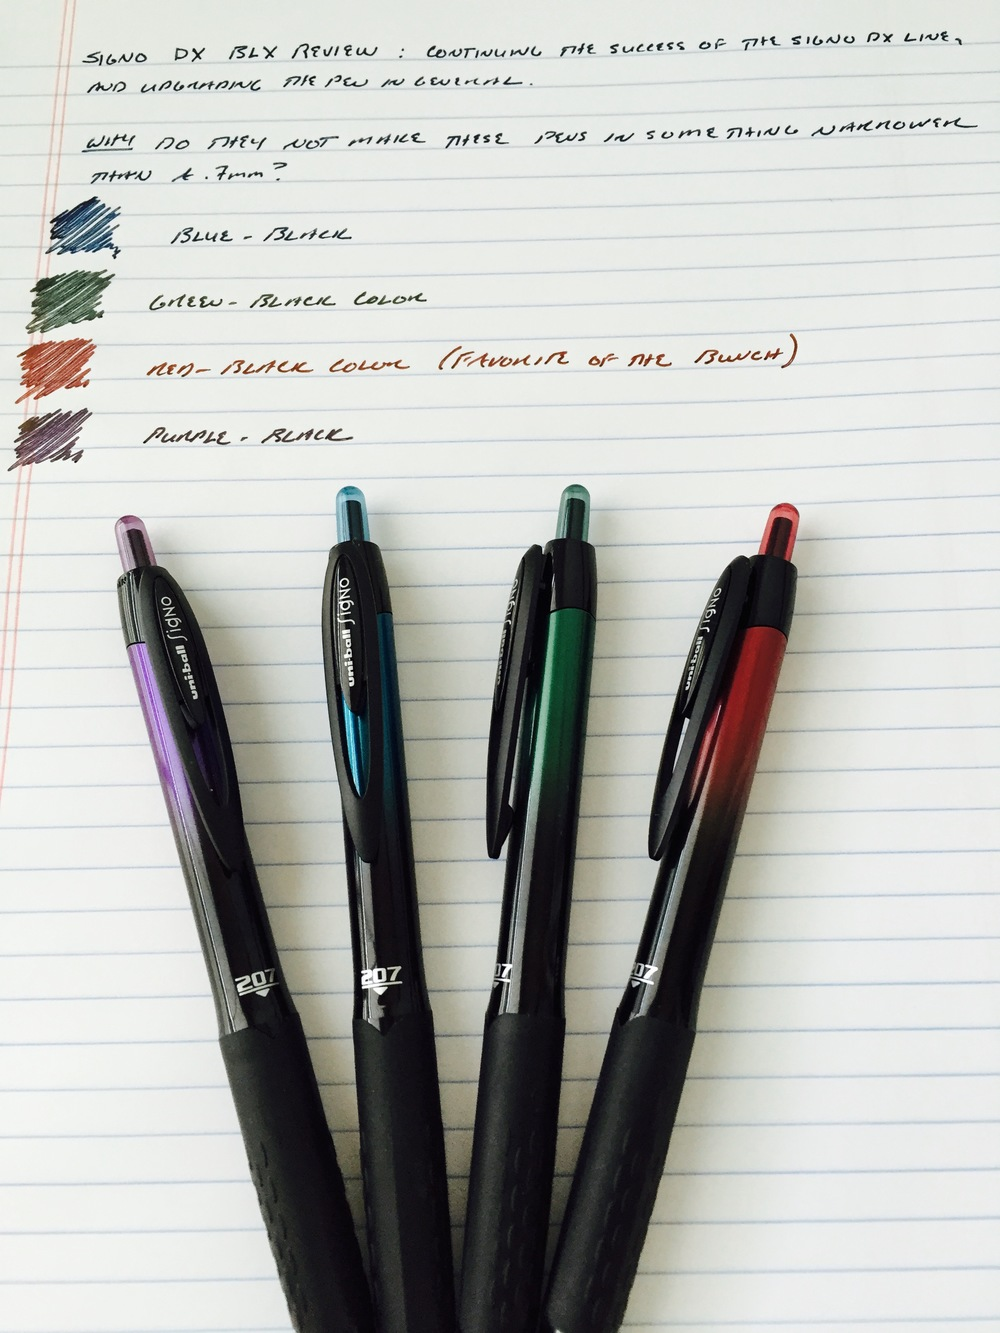 Four colors of the Signo 207 BLX range.  A co-worker stole the brown pen out of my pack.  I didn't like it anyway.